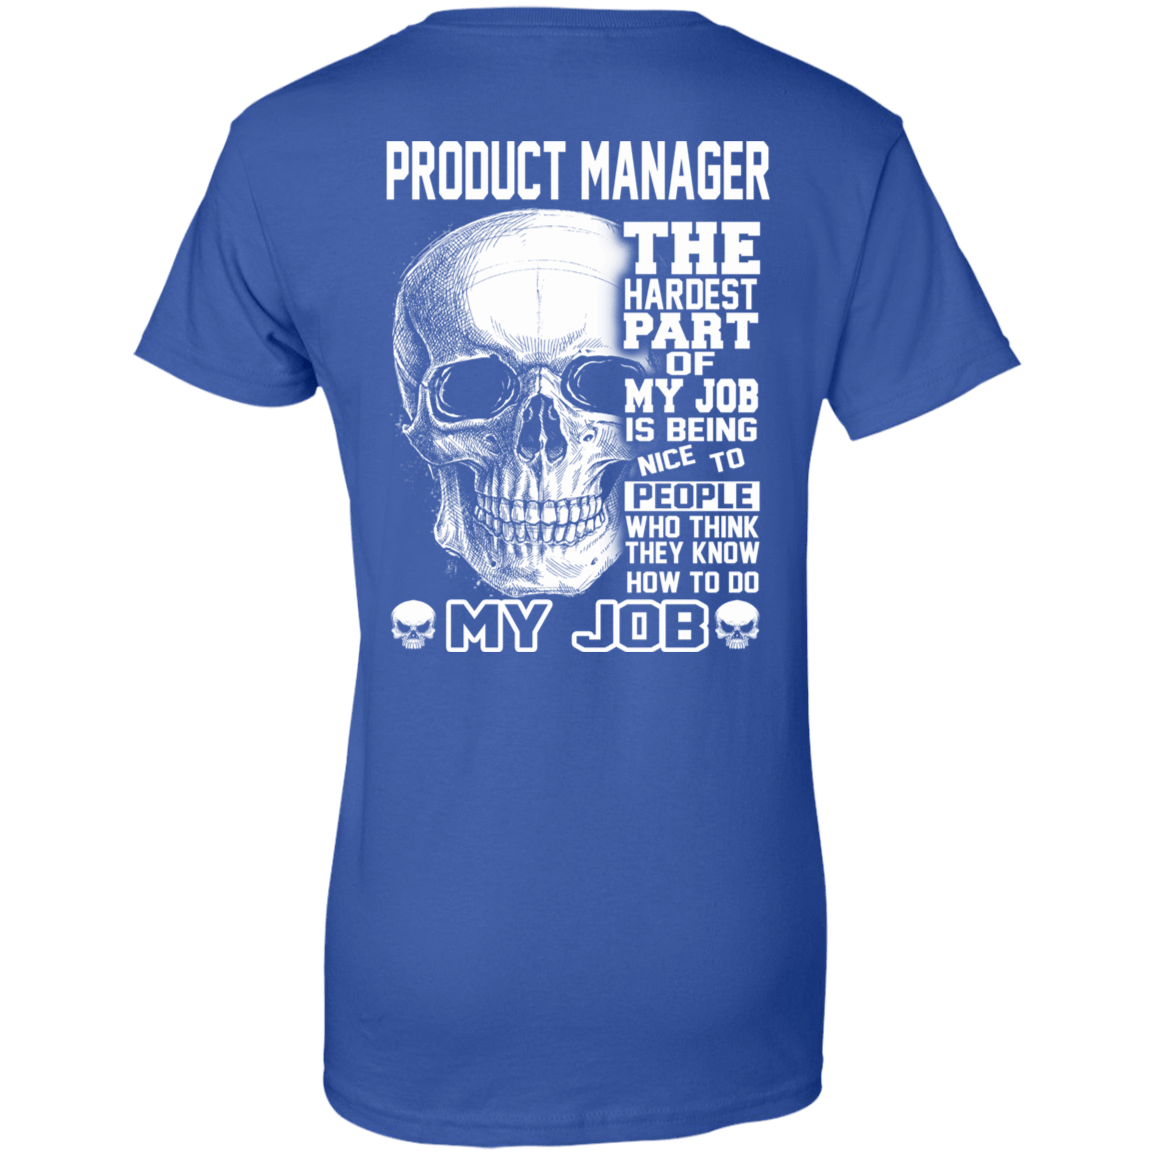 Product Manager The Hardest Part Of My Job 939-9264-71881743-44807 - Tee Ript